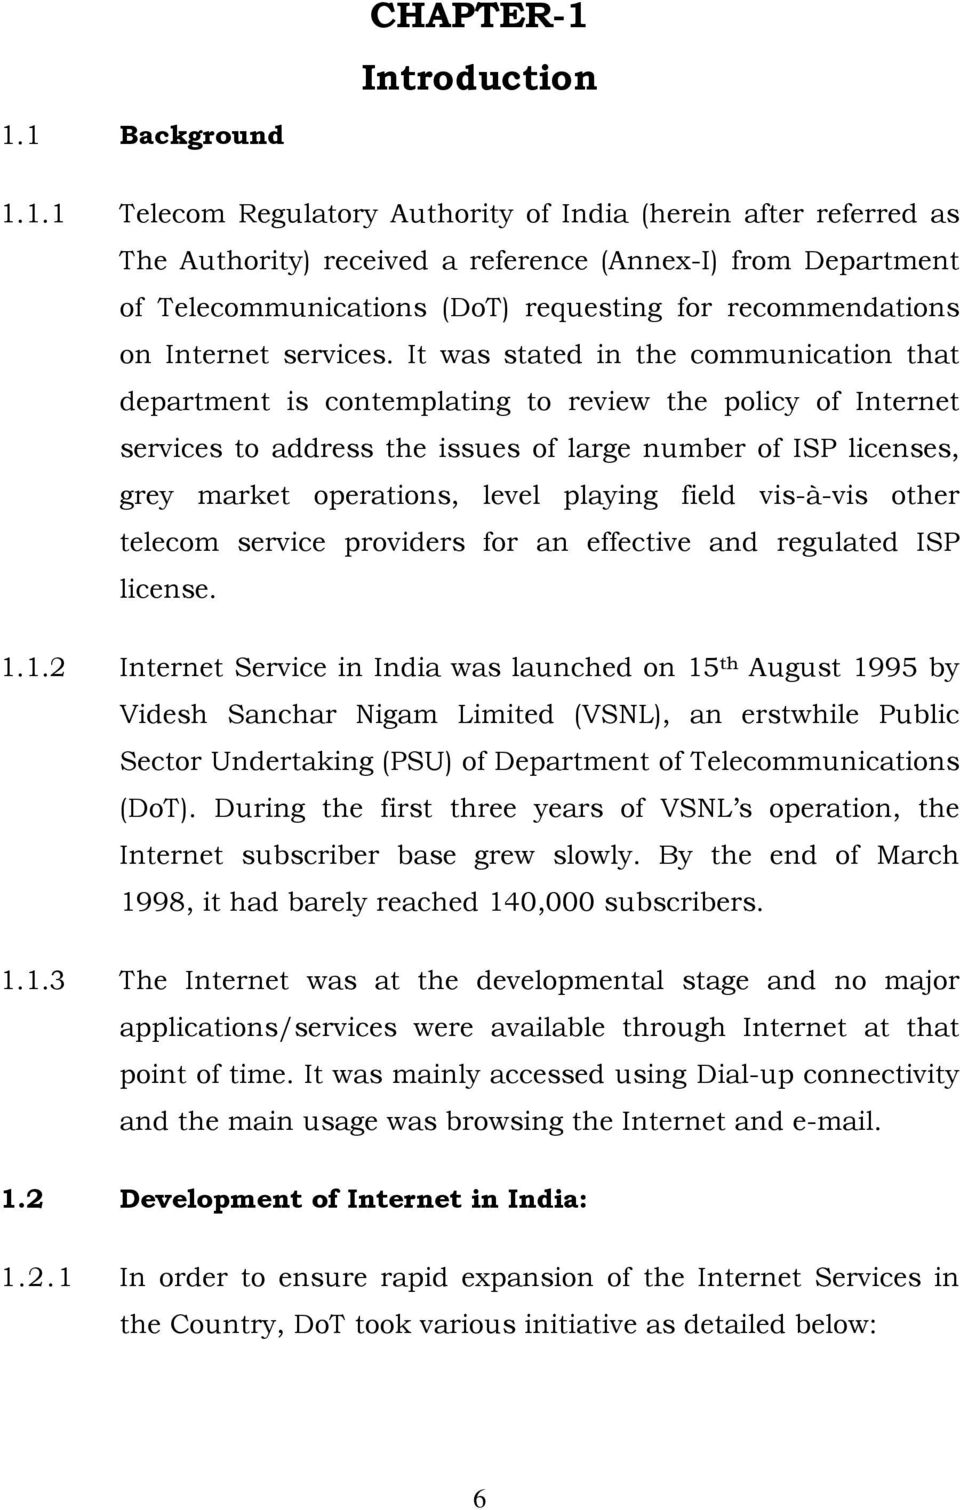 1 Background 1.1.1 Telecom Regulatory Authority of India (herein after referred as The Authority) received a reference (Annex-I) from Department of Telecommunications (DoT) requesting for